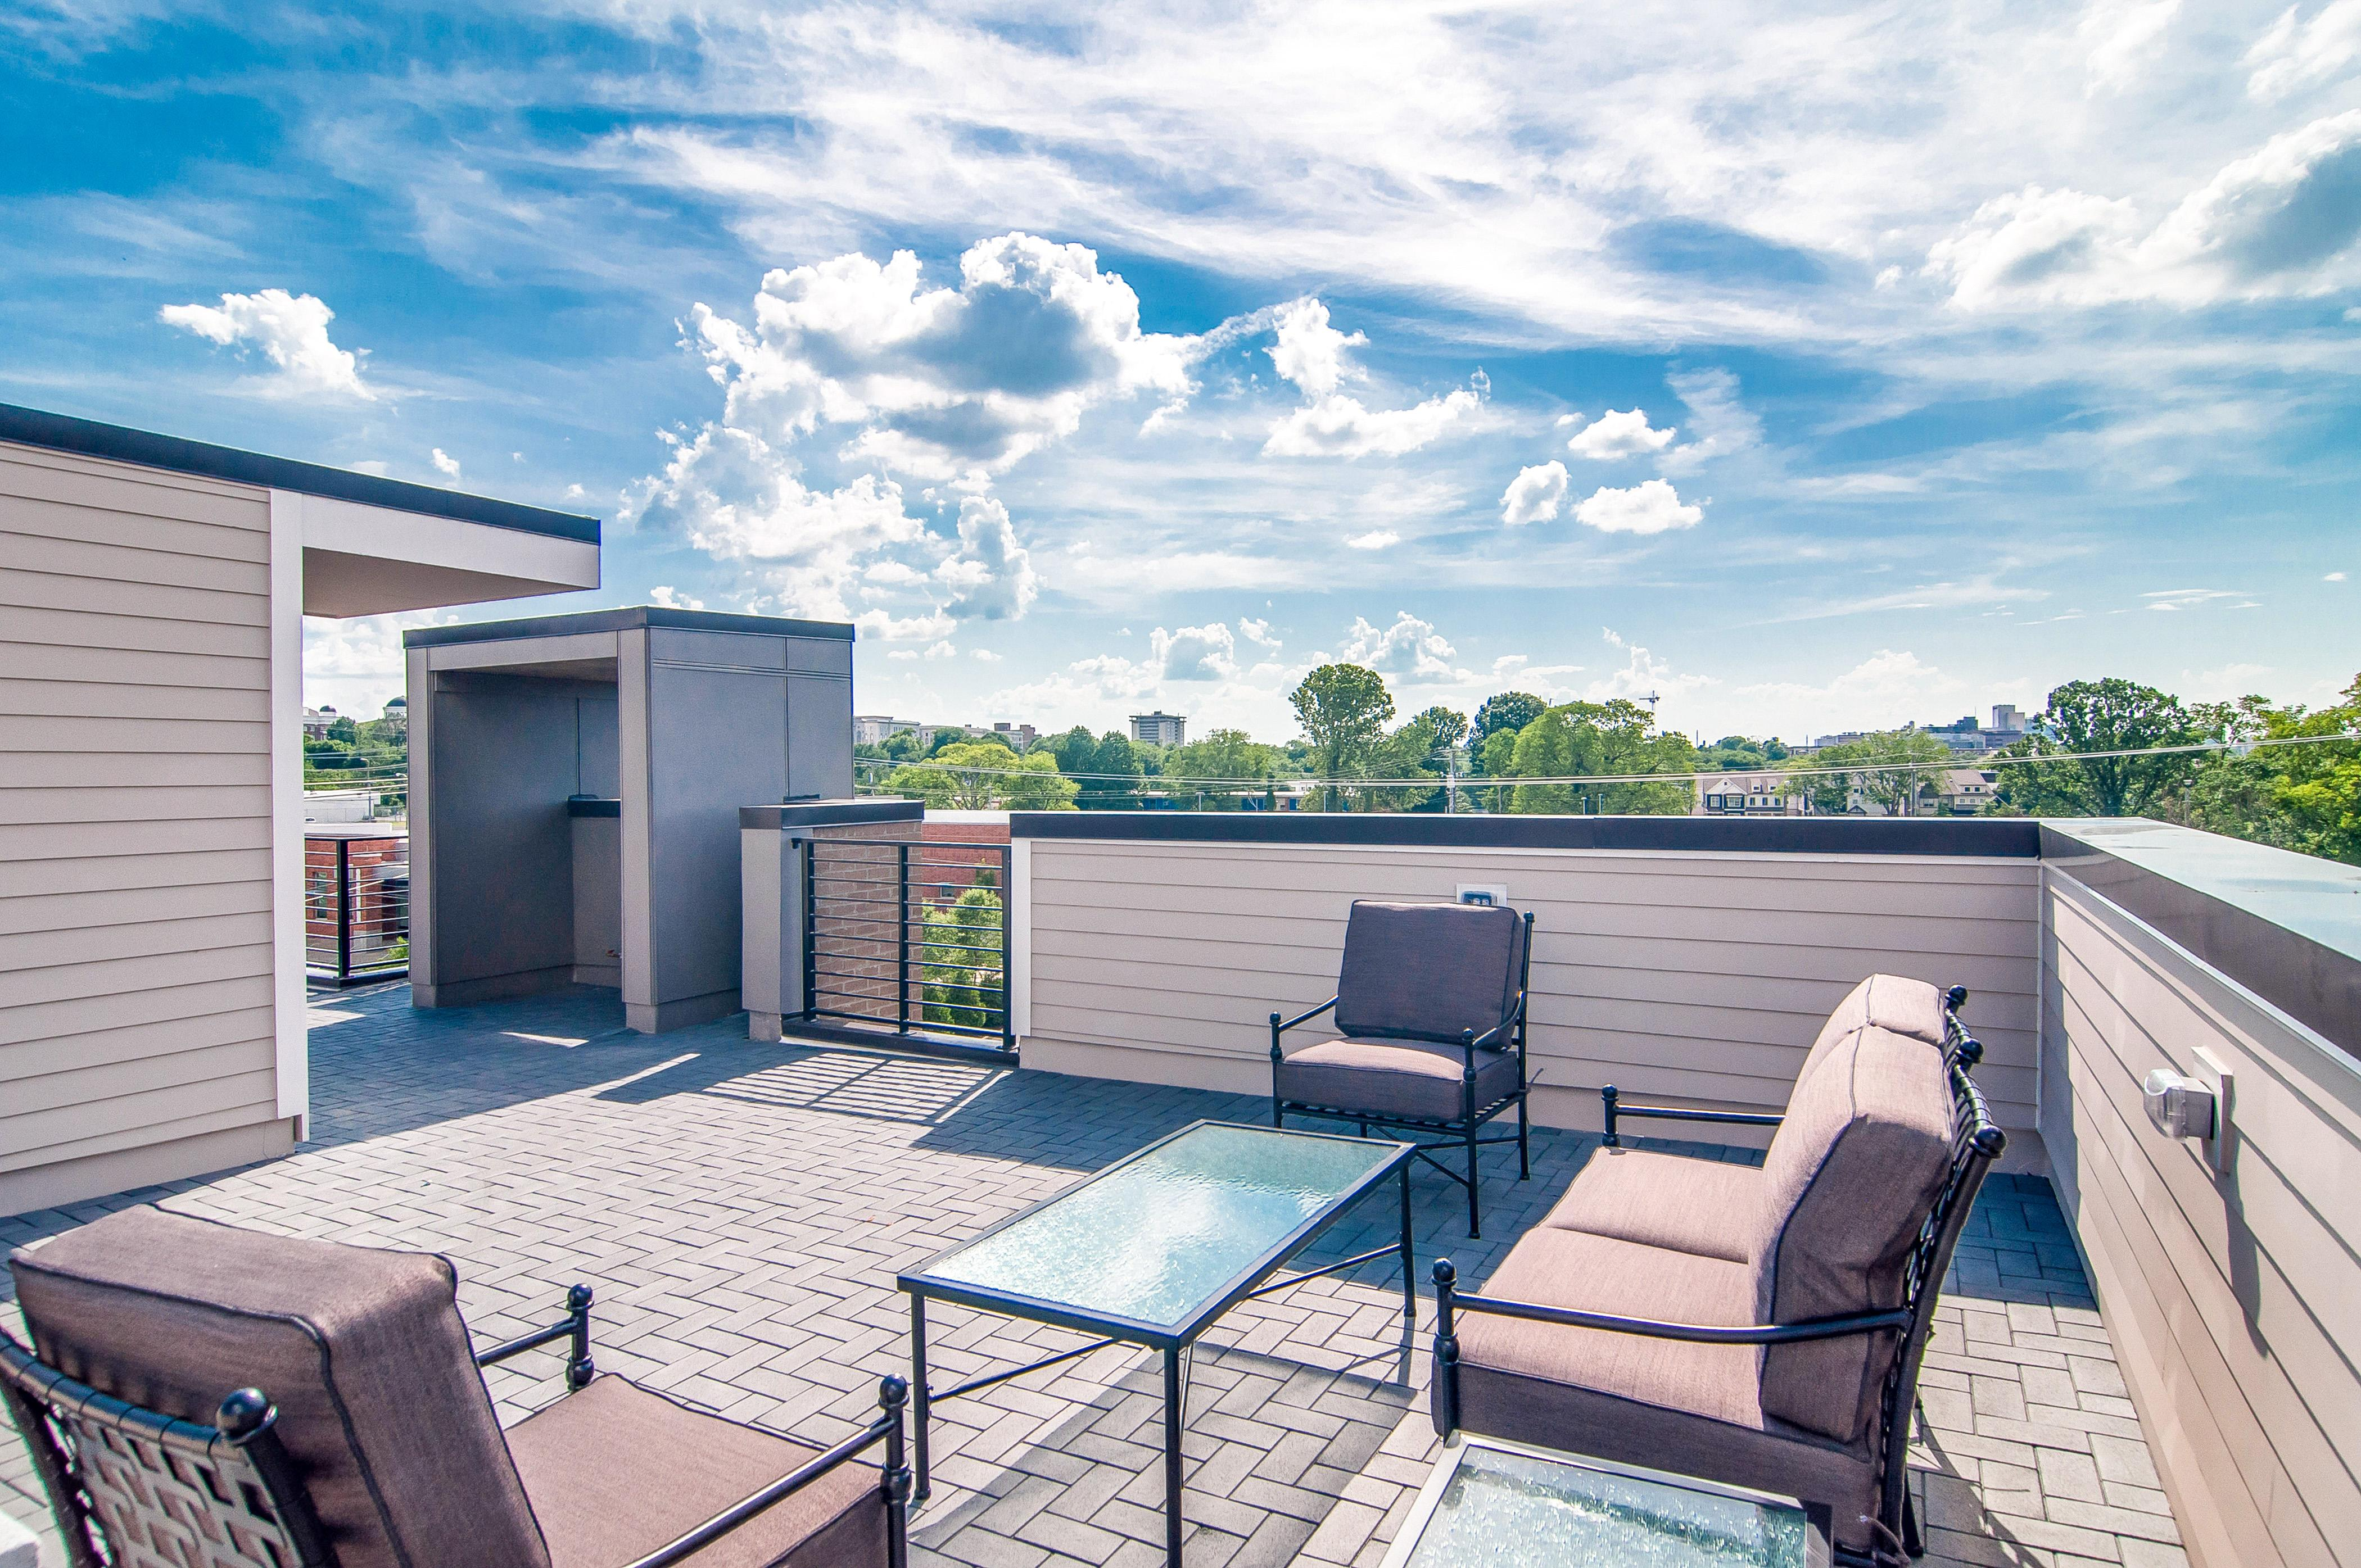 Property Image 2 - Nashville Townhome with Stylish Decor and Roof-Deck